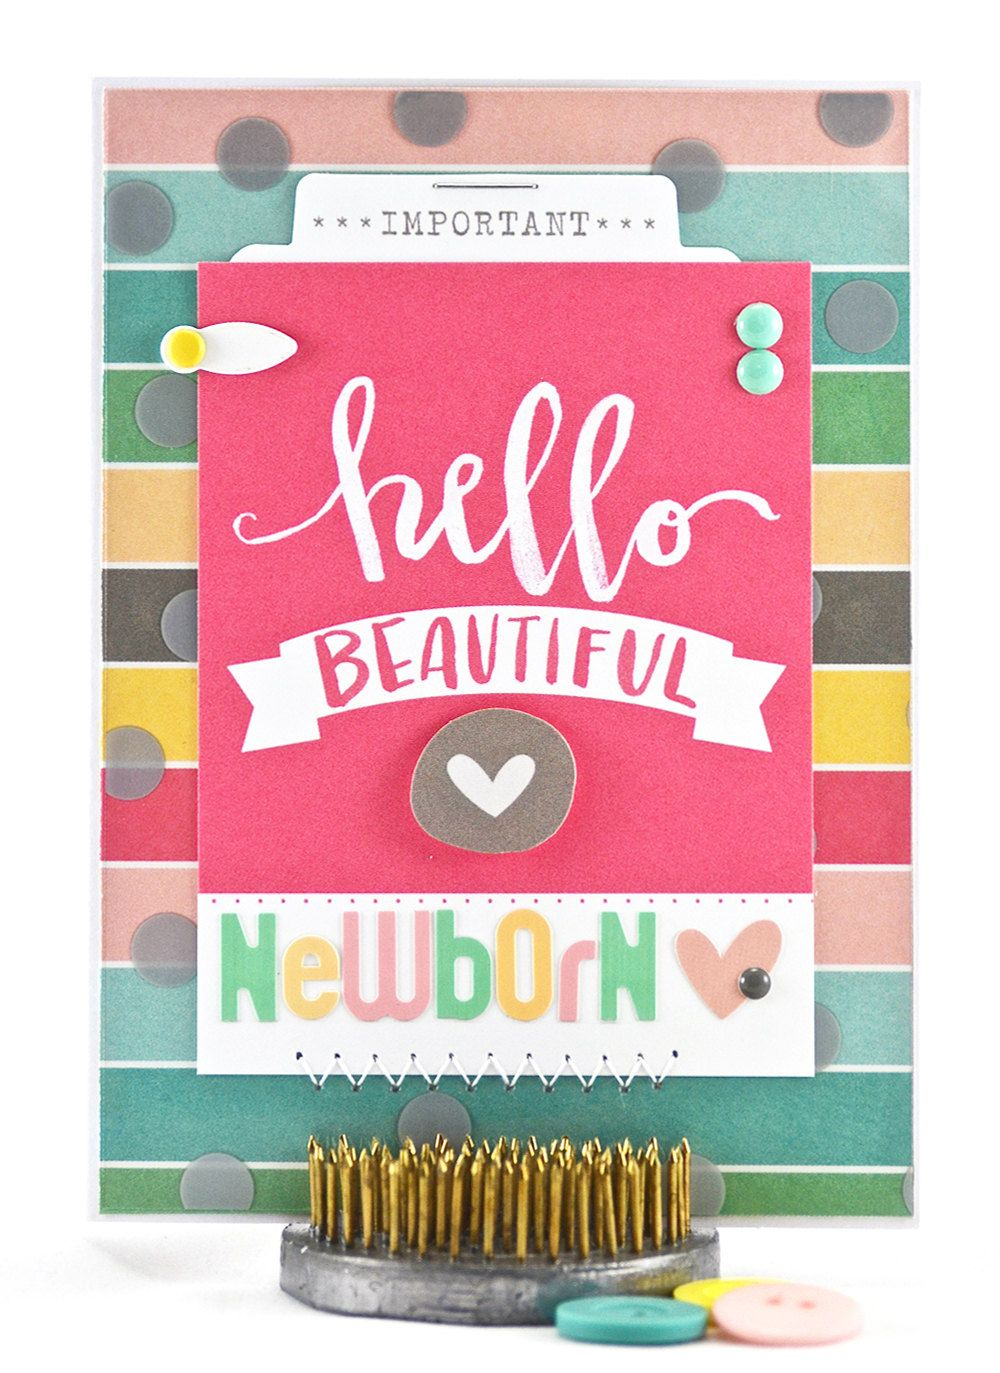 Newborn baby card wishes for new baby new baby congrats card new baby card card for baby wishes for baby girl card hello beautiful kristyandbryce Gallery